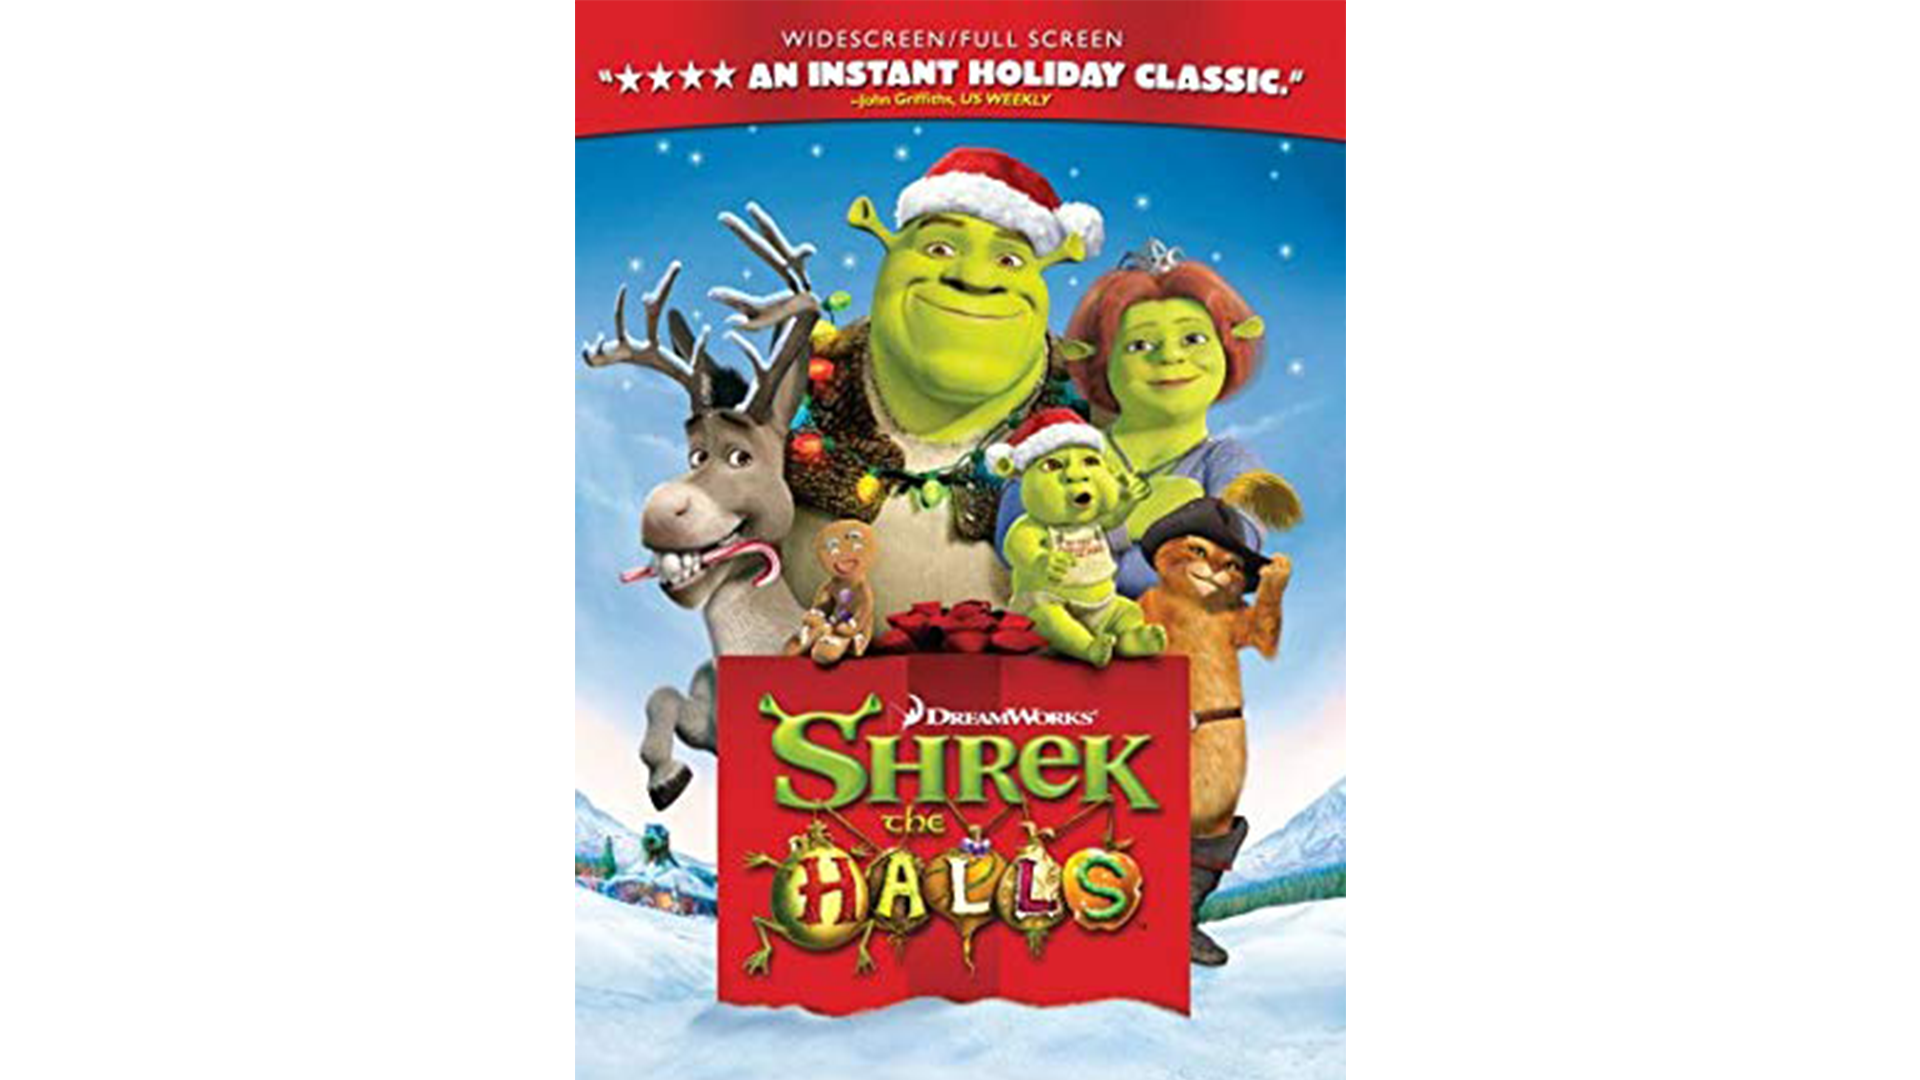 Shreck The Halls